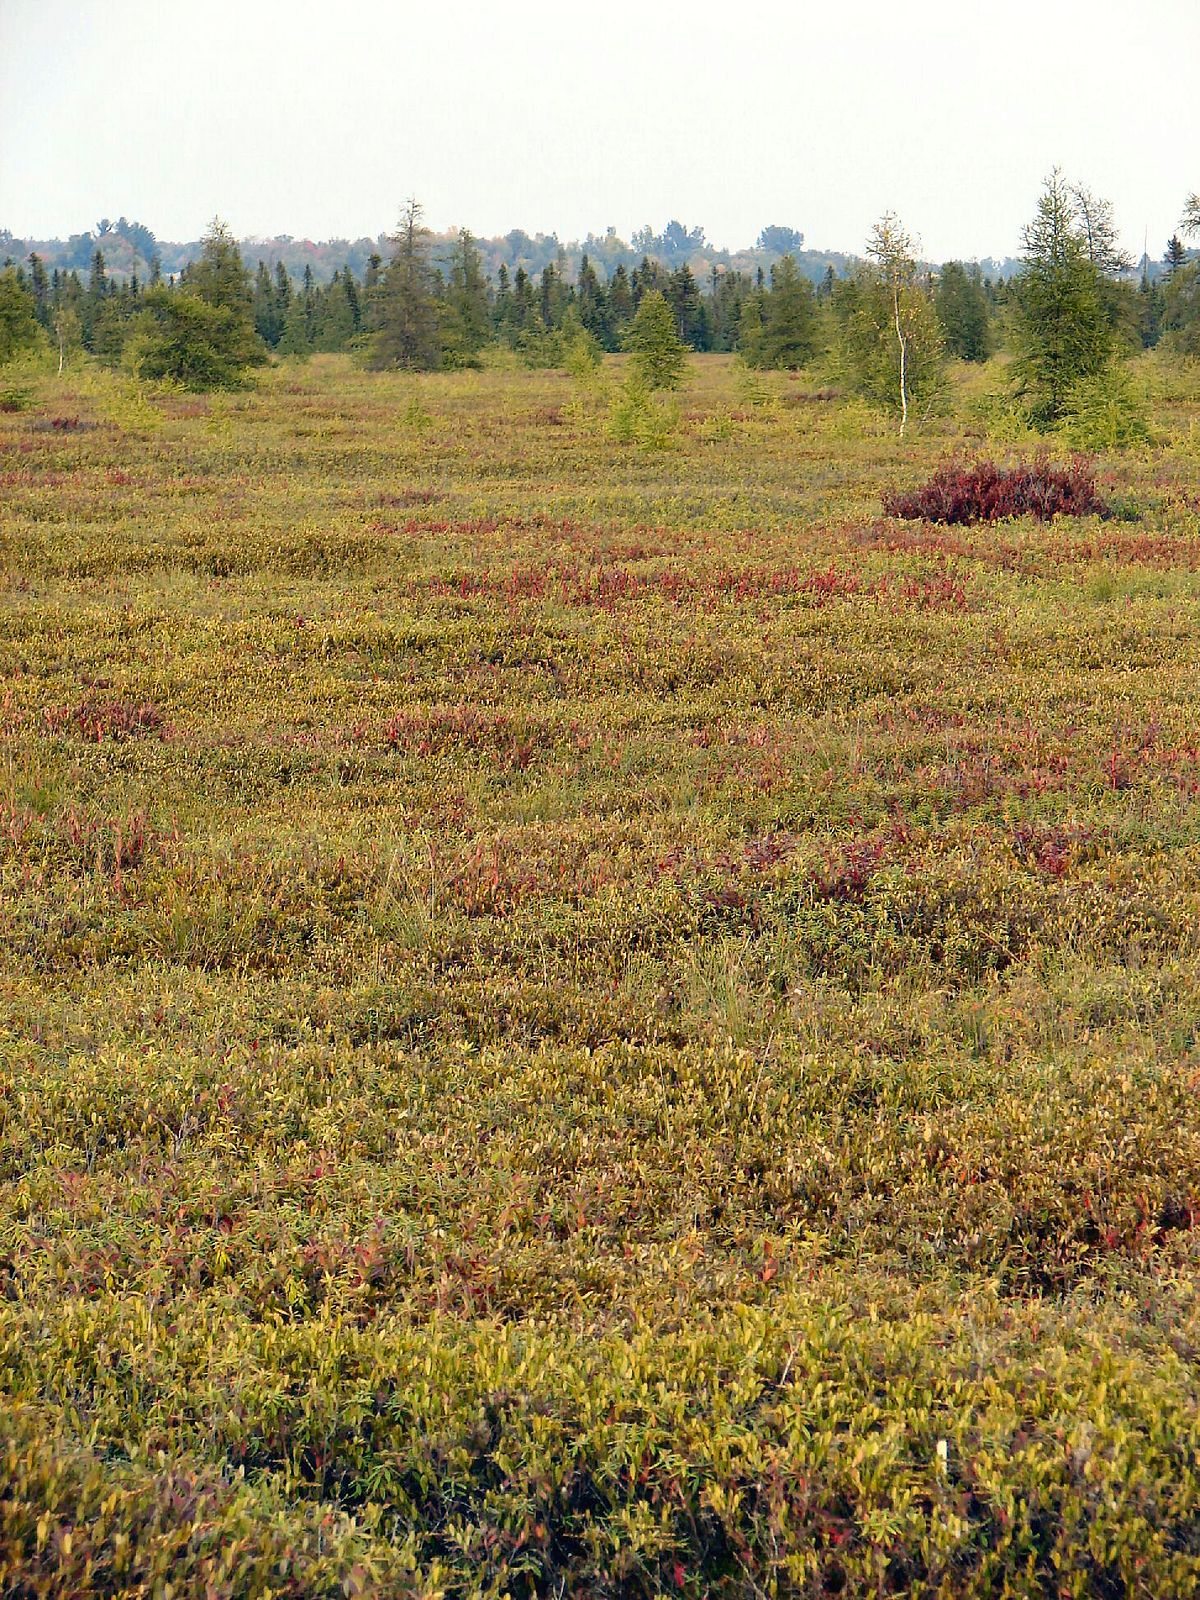 Don't know much about peatlands? This will get you started